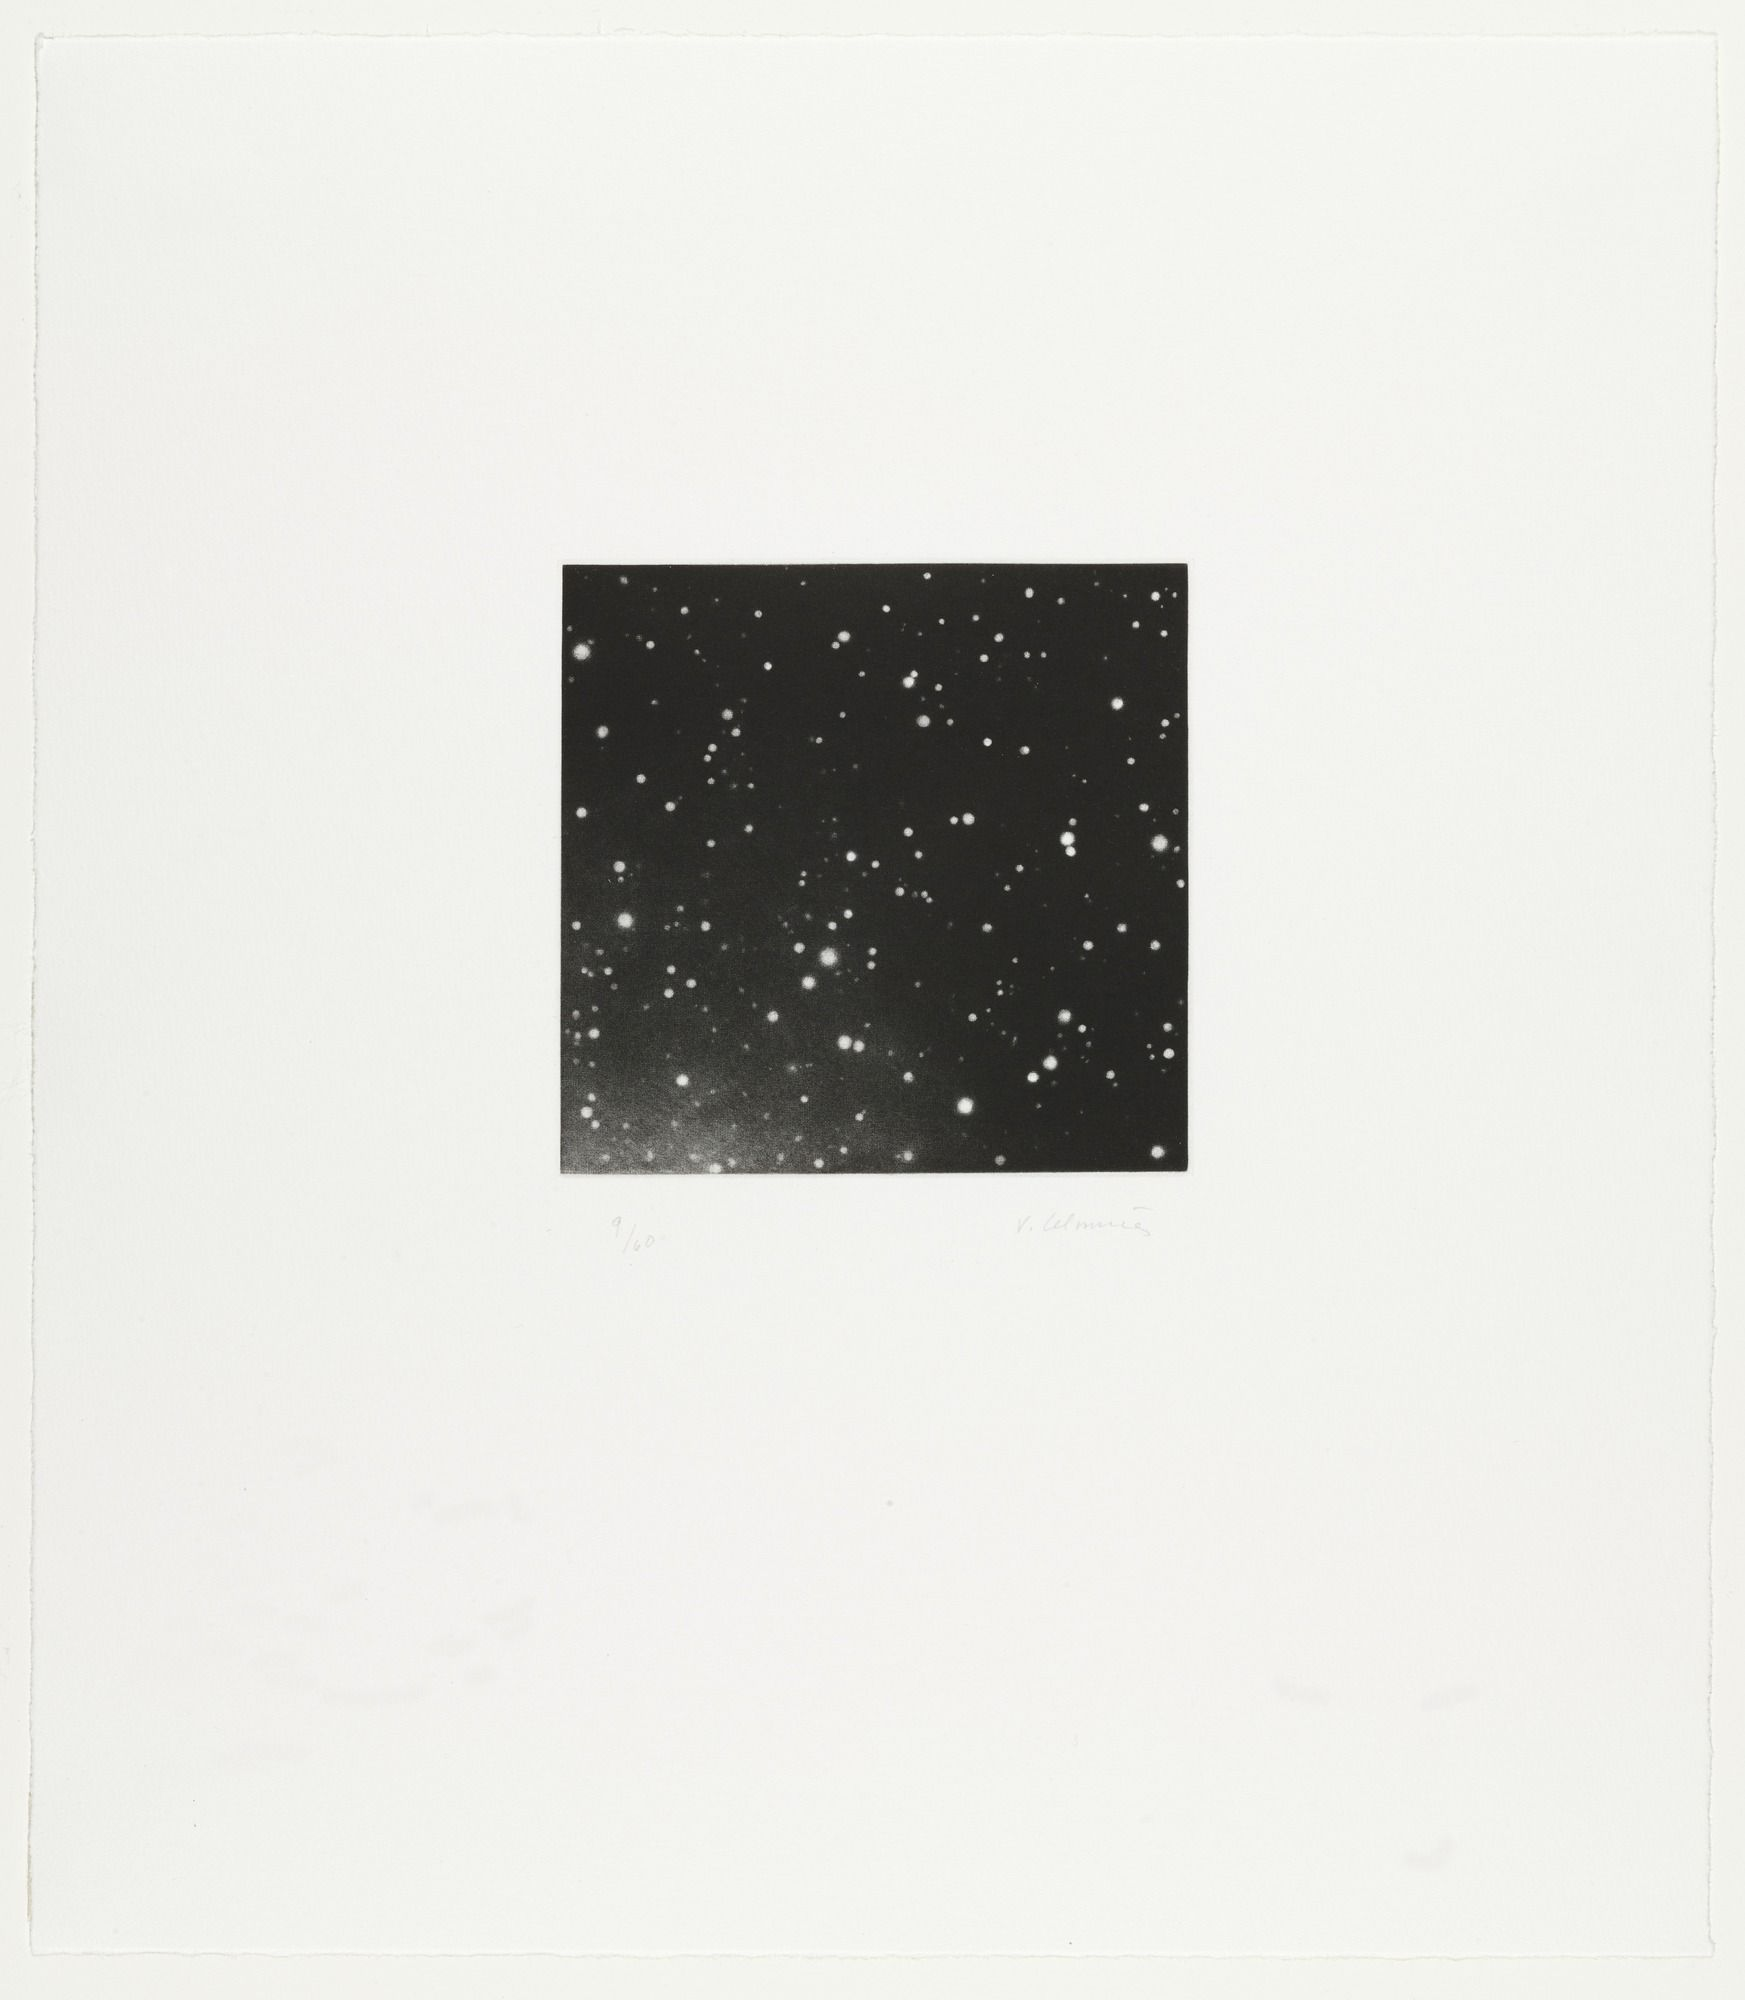 "Vija Celmins. Untitled (for Parkett no. 44). 1995. Mezzotint. plate: 5 x 5 3/16"" (12.7 x 13.1cm); sheet: 16 9/16 x 14"" (42 x 35.5cm). Riva Castleman Endowment Fund, Lily Auchincloss Fund, and Gift of Parkett. 50.1998.1. © 2017 Vija Celmins. Drawings and Prints"